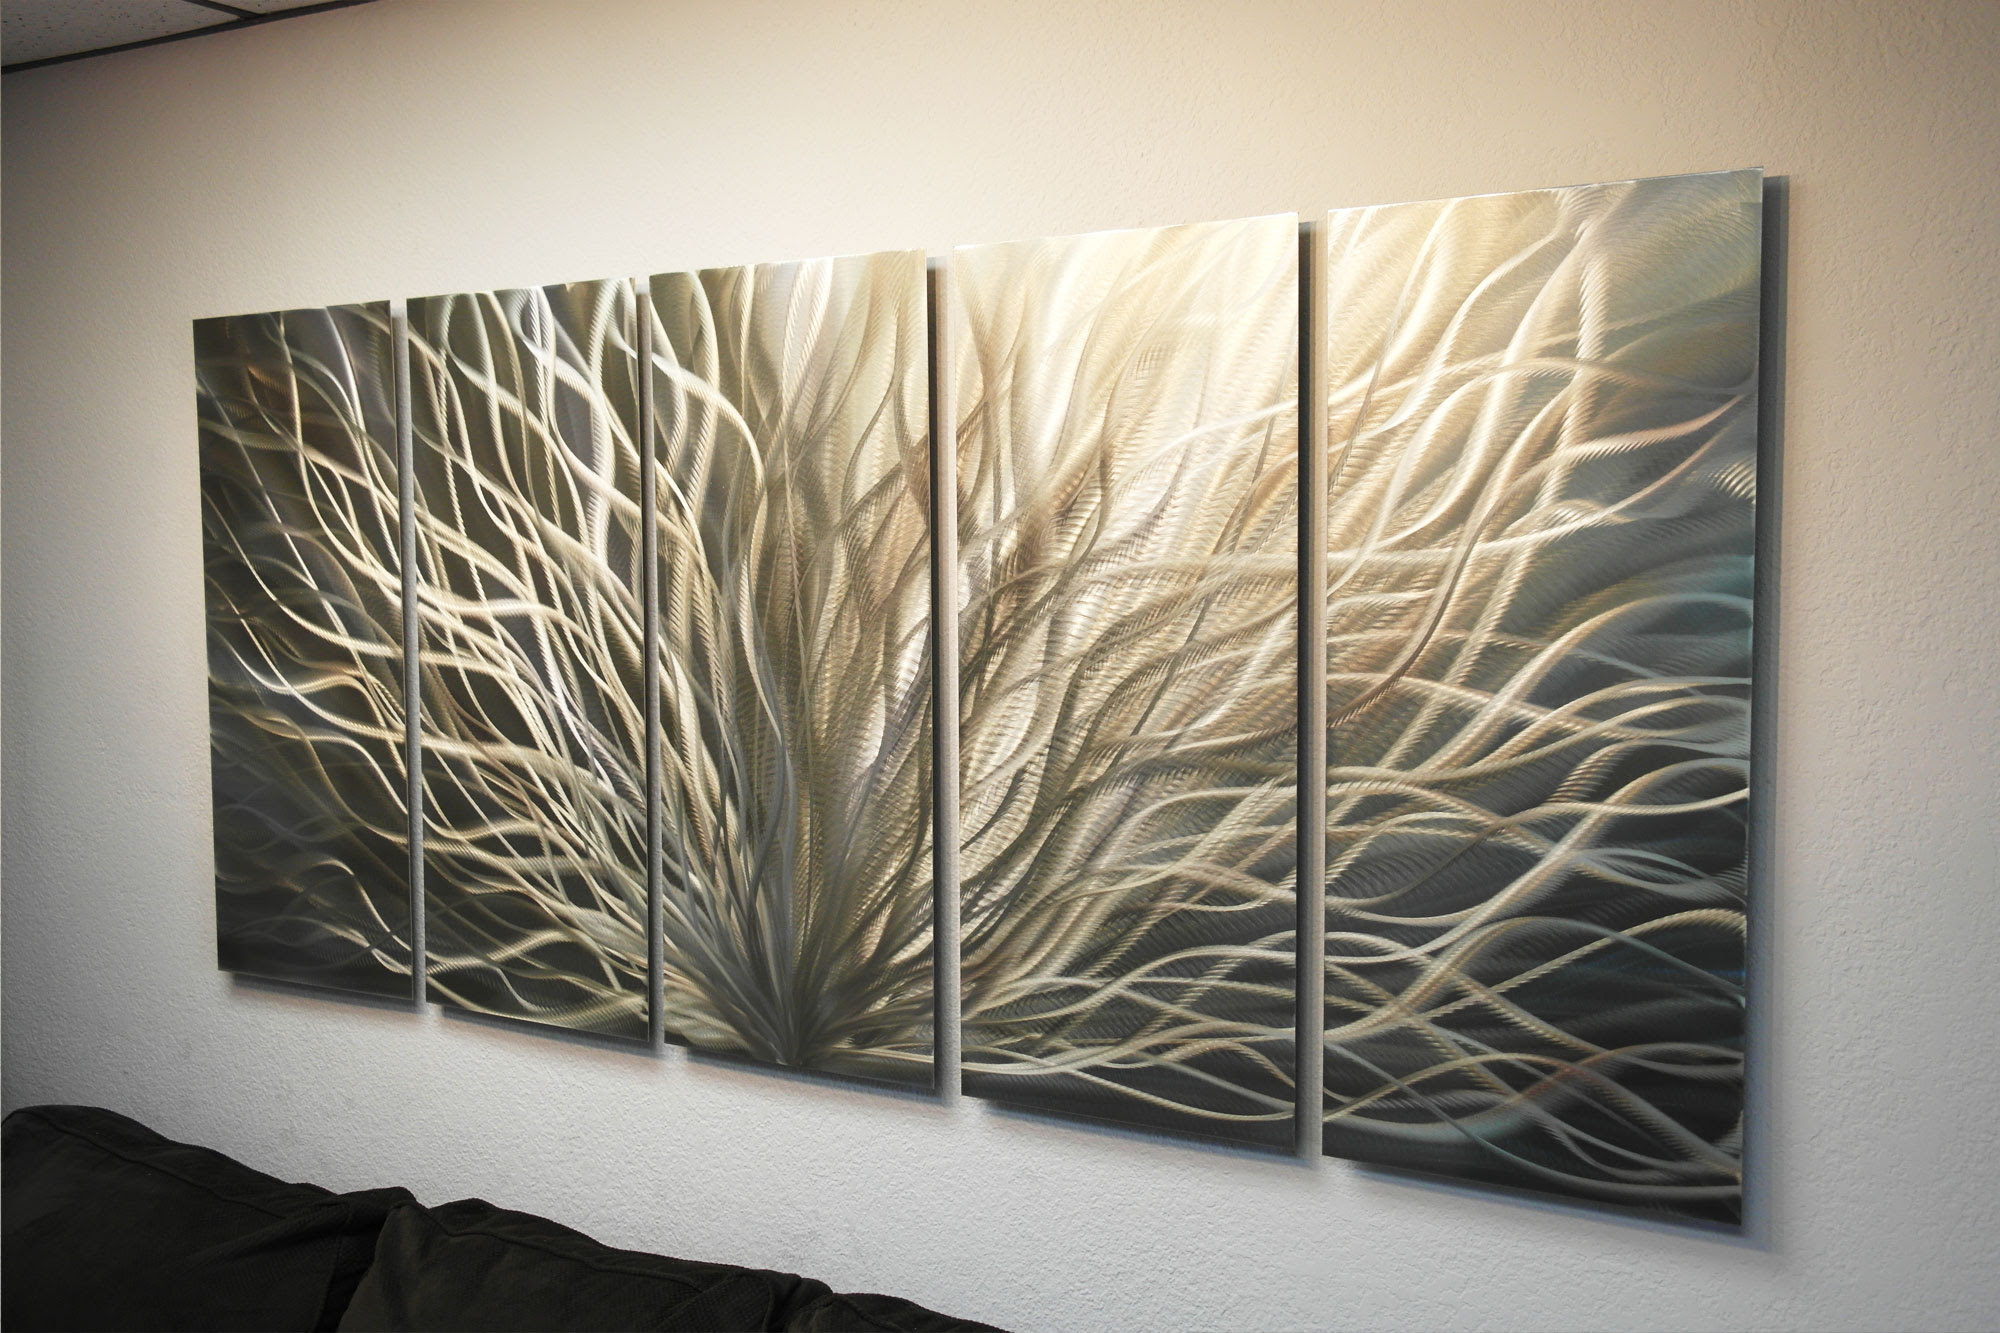 Radiance Gold Silver 36x79 - Metal Wall Art Abstract ...